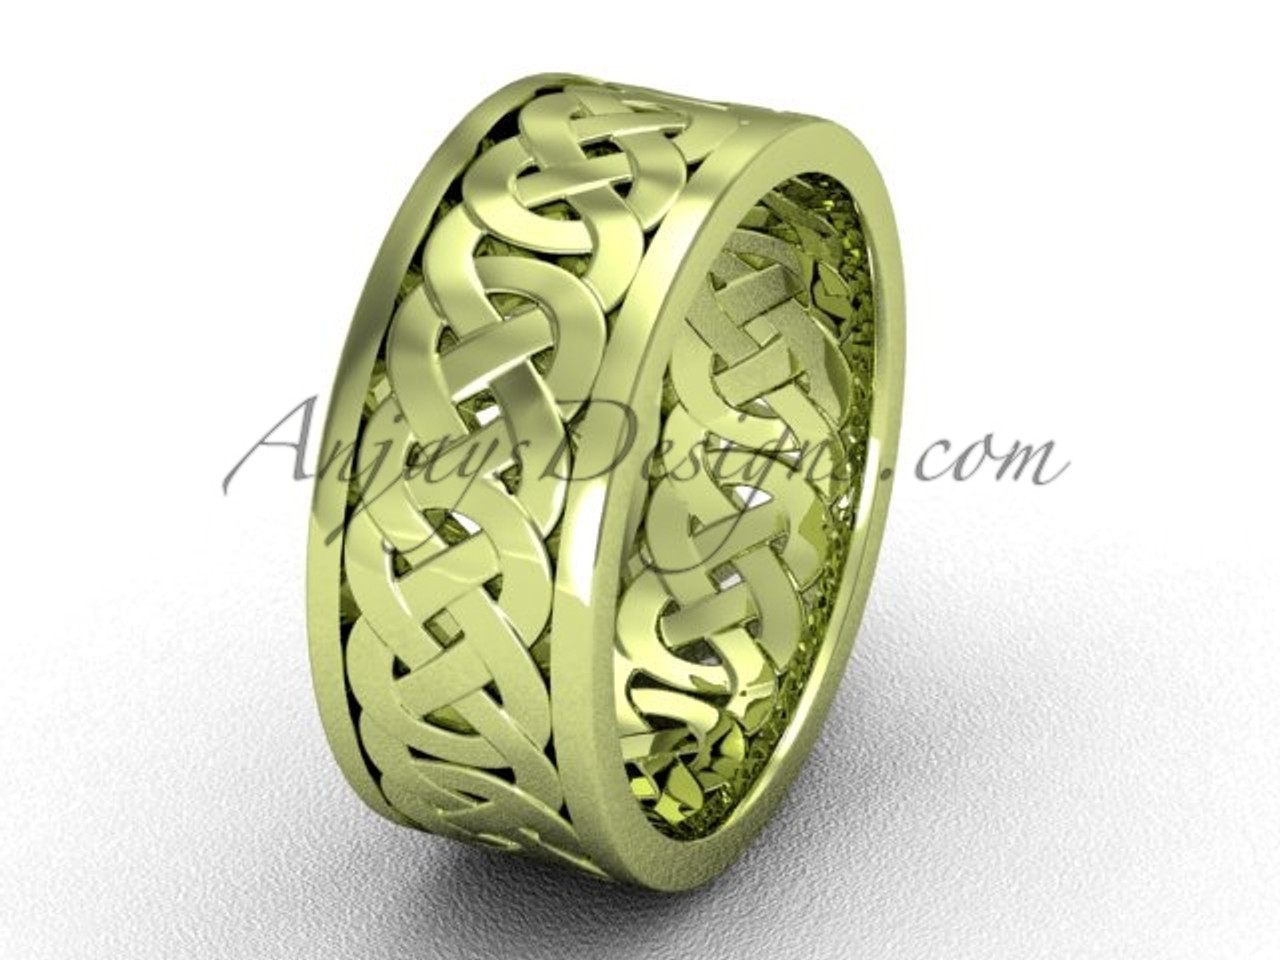 Cool Wedding Rings.7 5 Mm Wide Unique Elegant Celtic Wedding Bands 14kt Yellow Gold Modern Engagement Ring Band Ct7431g